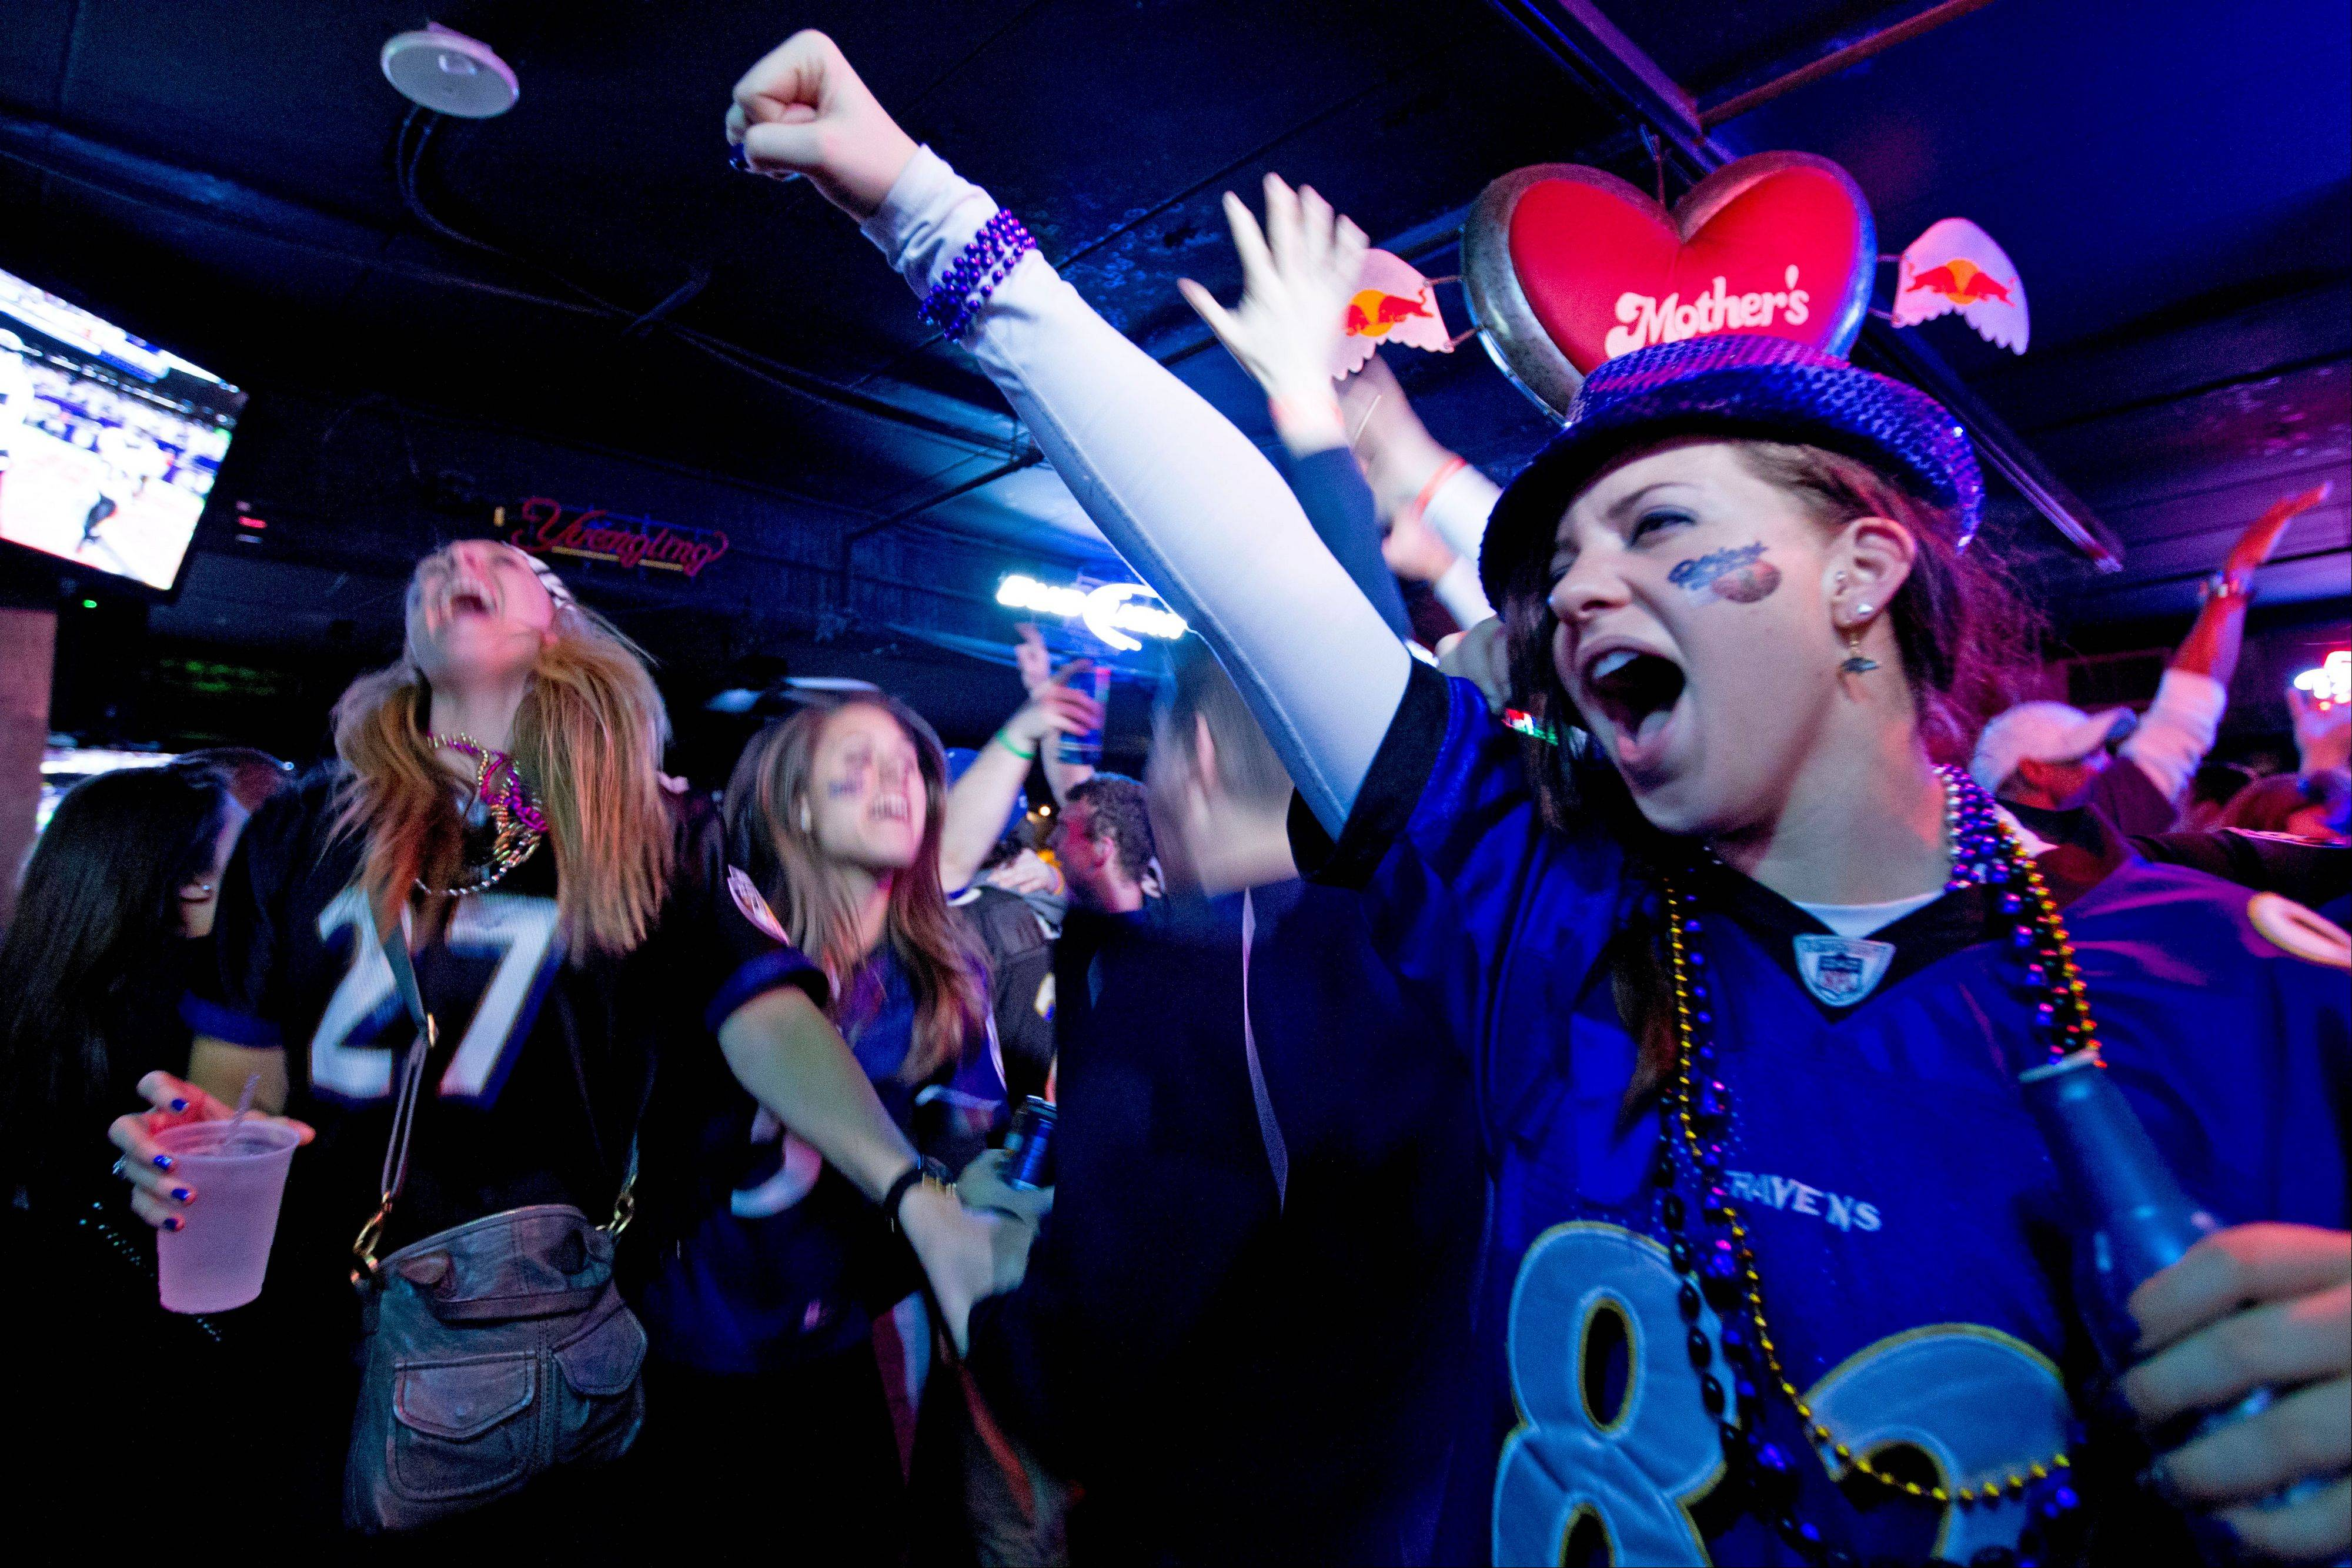 Ravens fans celebrate at a pub in Baltimore after their team scored the third touchdown against San Francisco 49ers on Sunday.